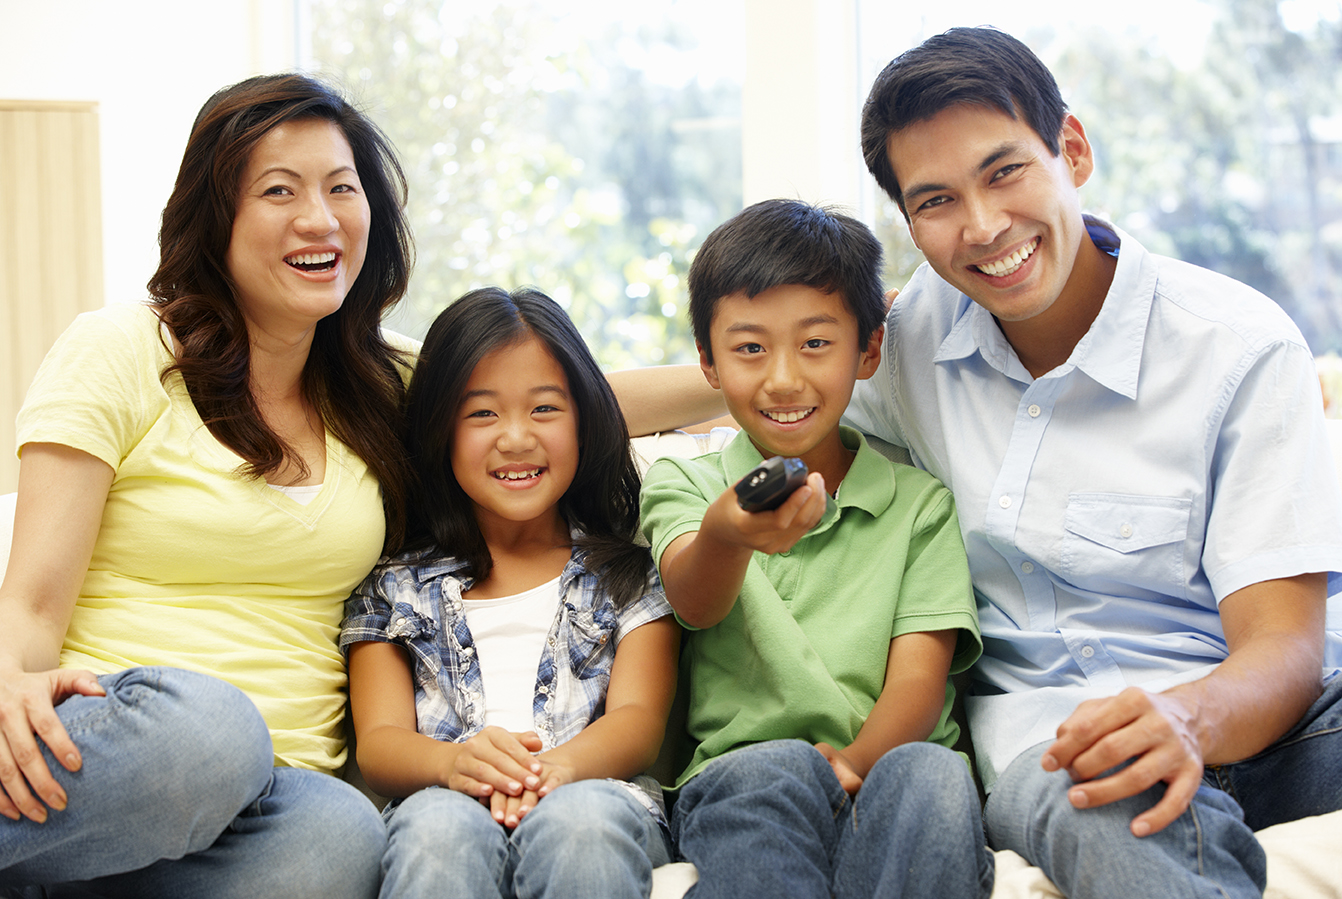 Image of family on couch with TV remote